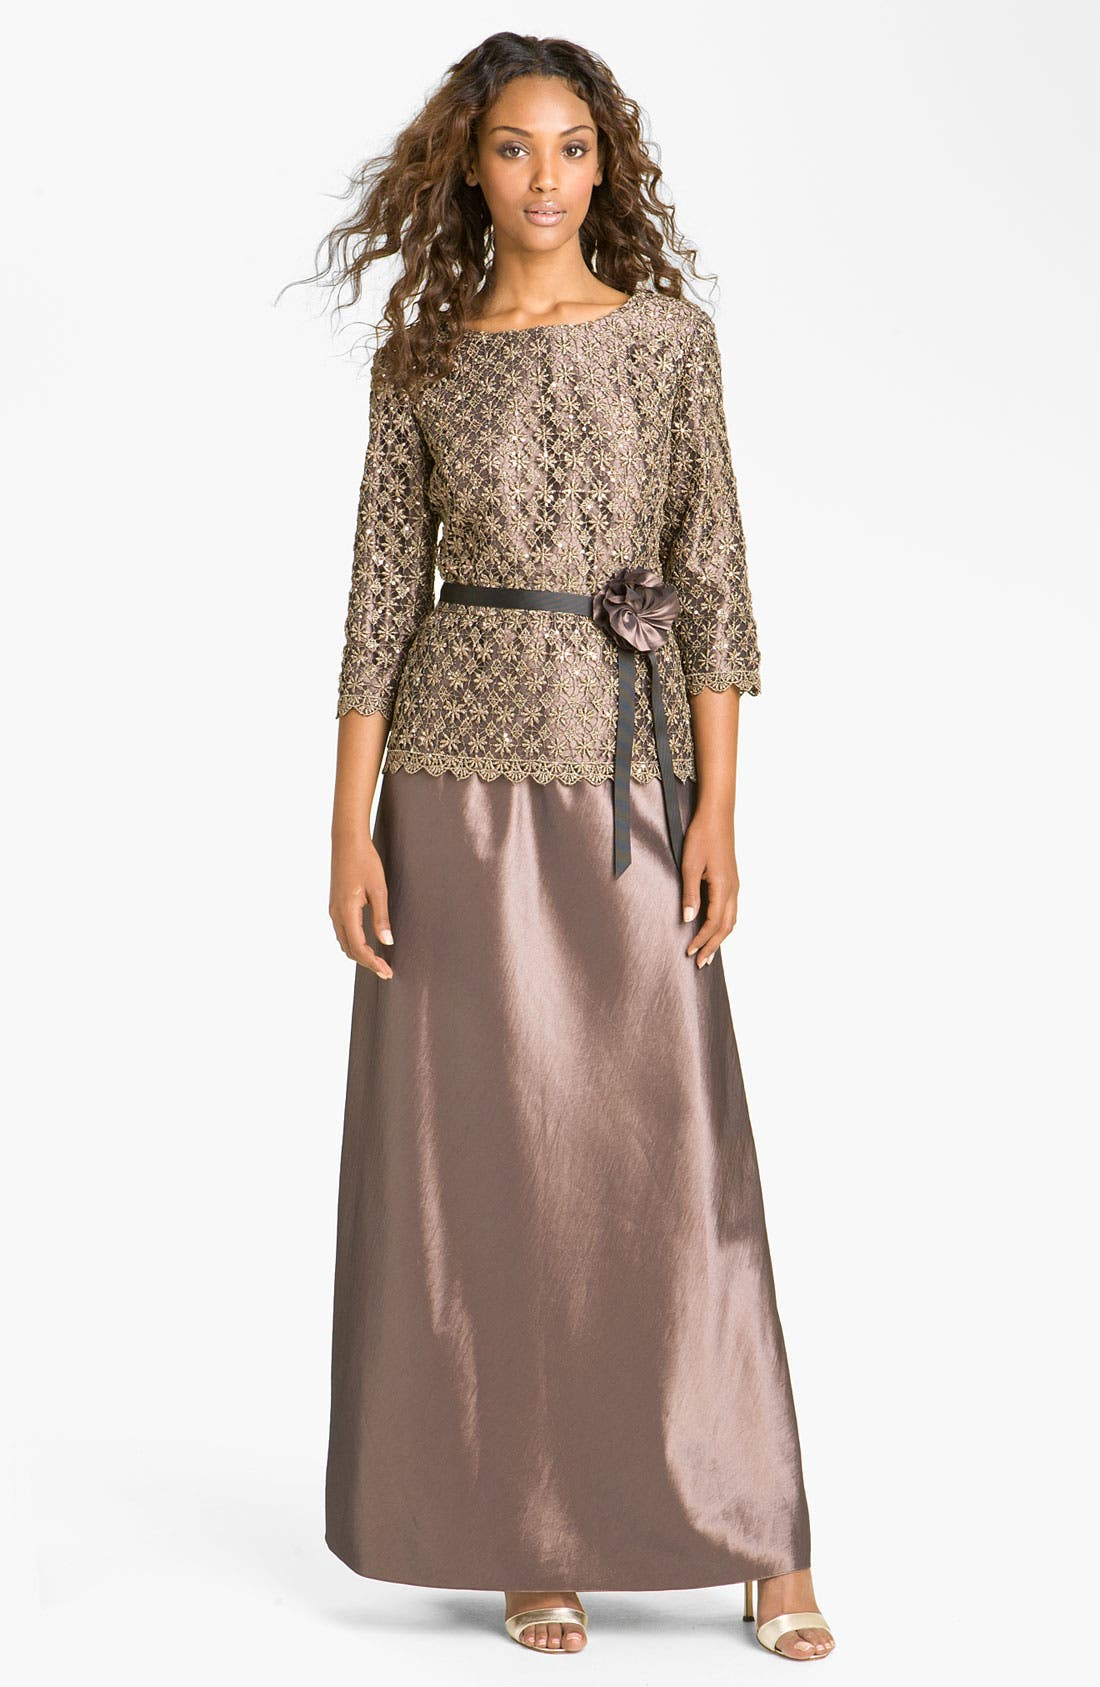 Main Image - Alex Evenings Two-Piece Lace Overlay Taffeta Dress